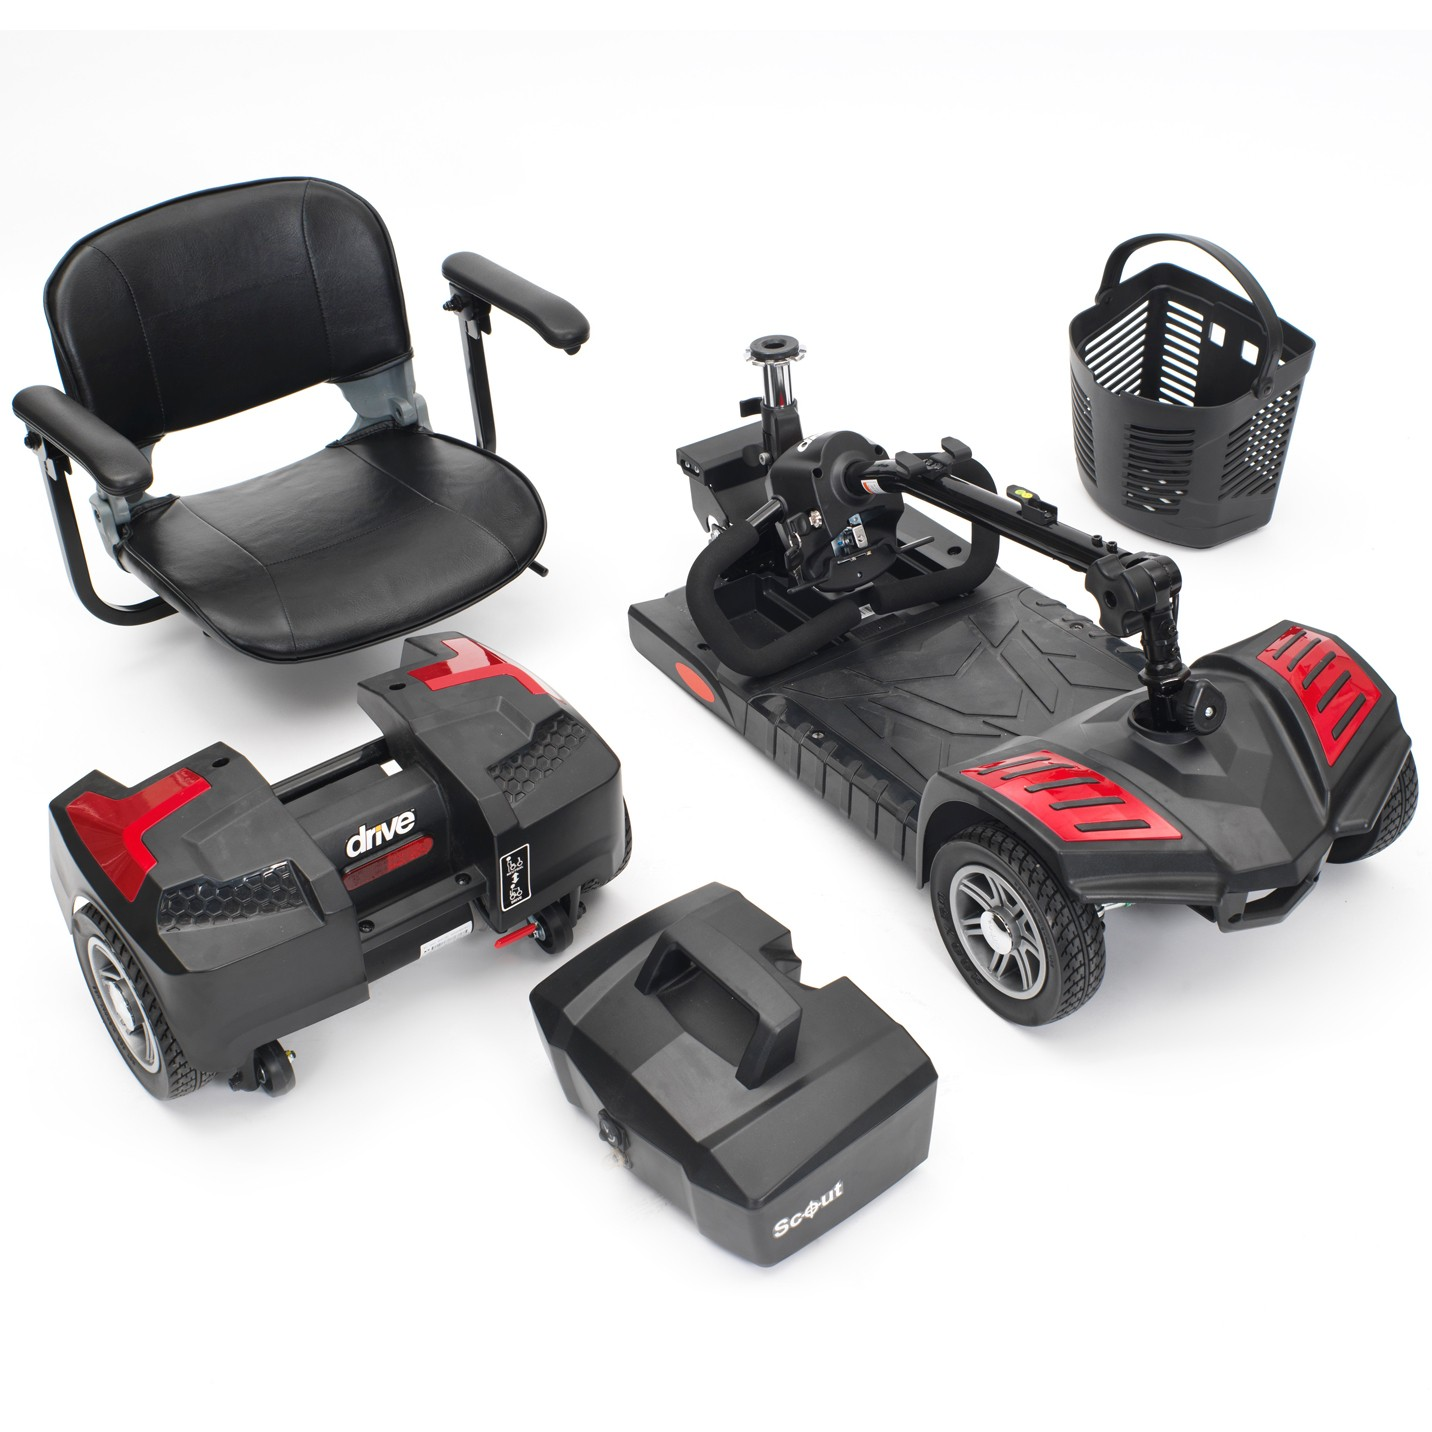 Mobility Scooter on Promotional Offer. Scout 4 Wheel Travel Power Scooter by Drive Medical